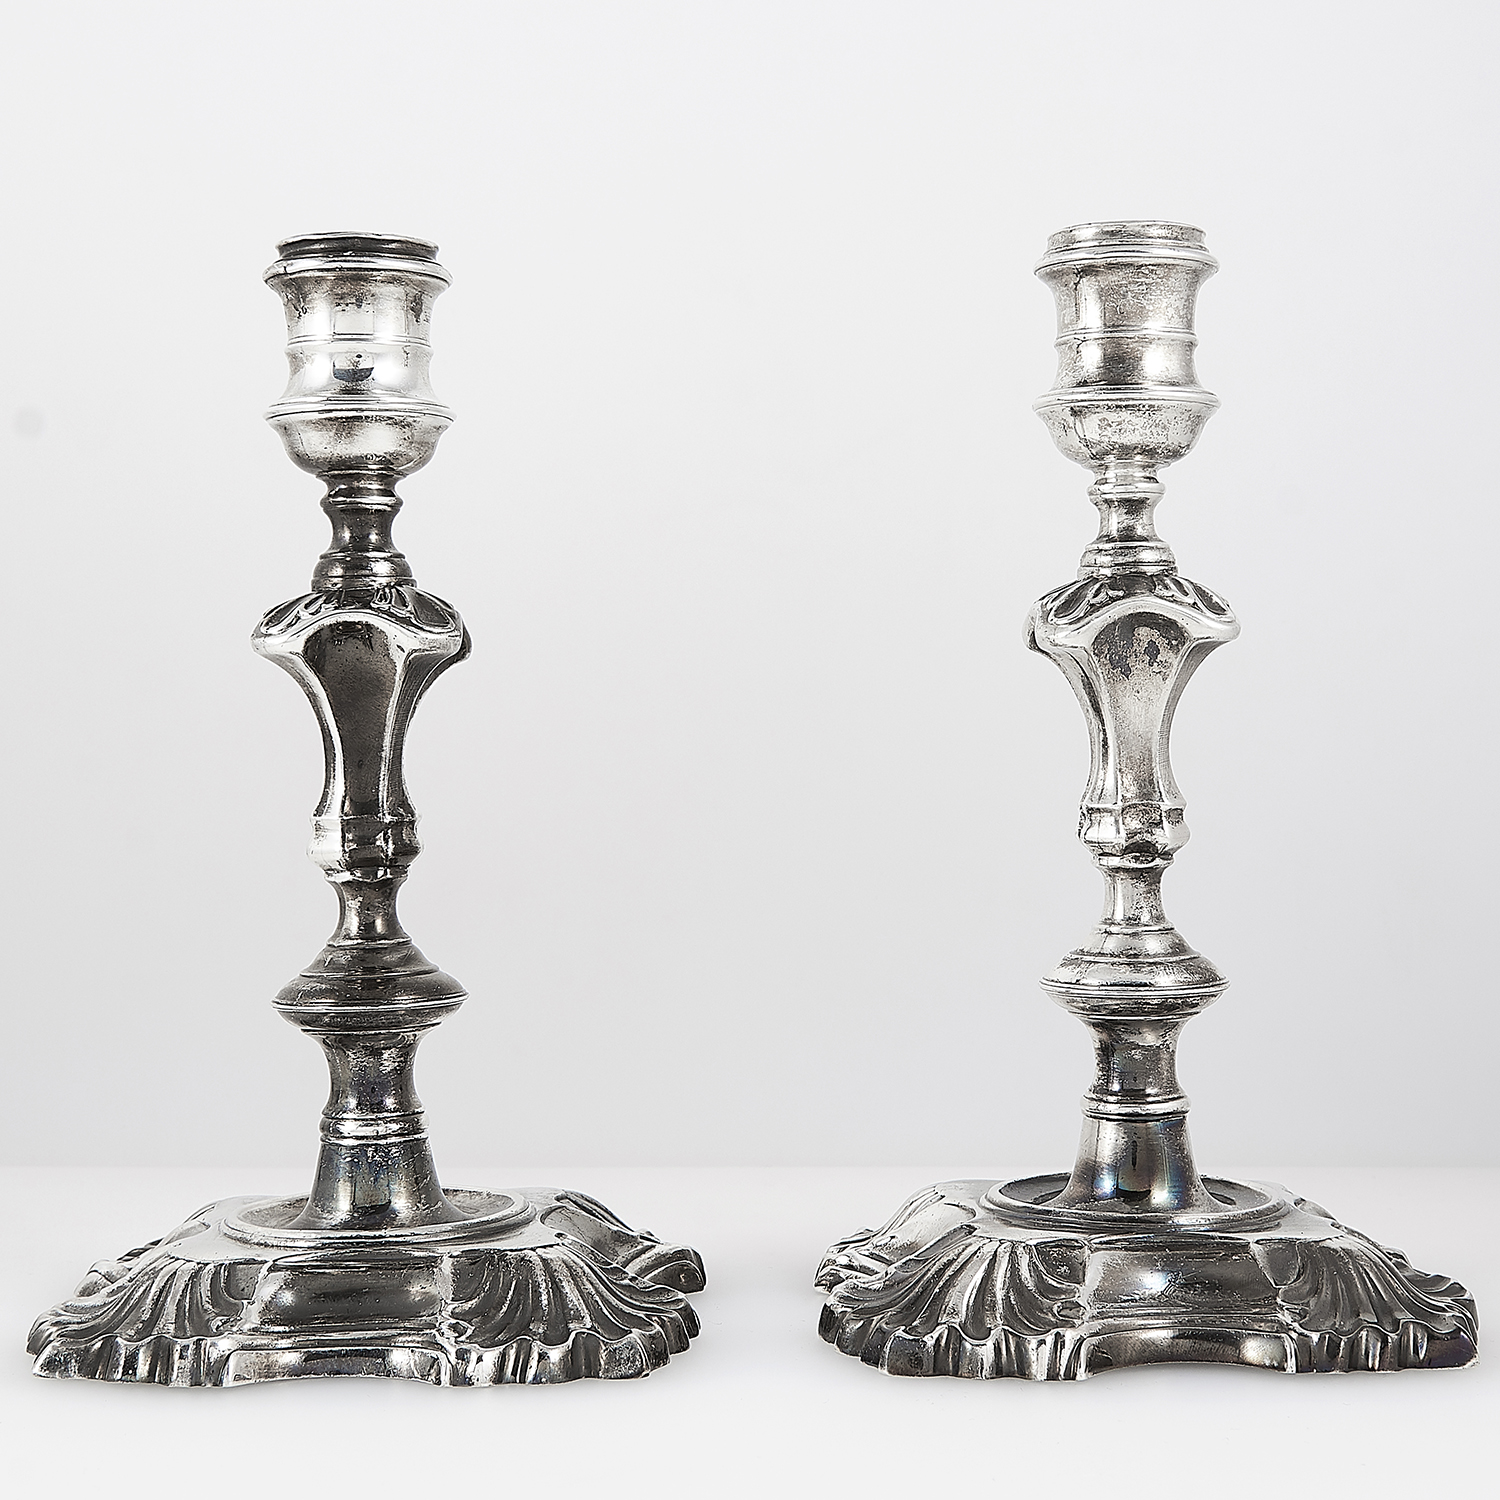 Los 13 - PAIR OF ANTIQUE GEORGE III STERLING SILVER CANDLESTICKS, JAMES GOULD, LONDON 1767 the stylised stems